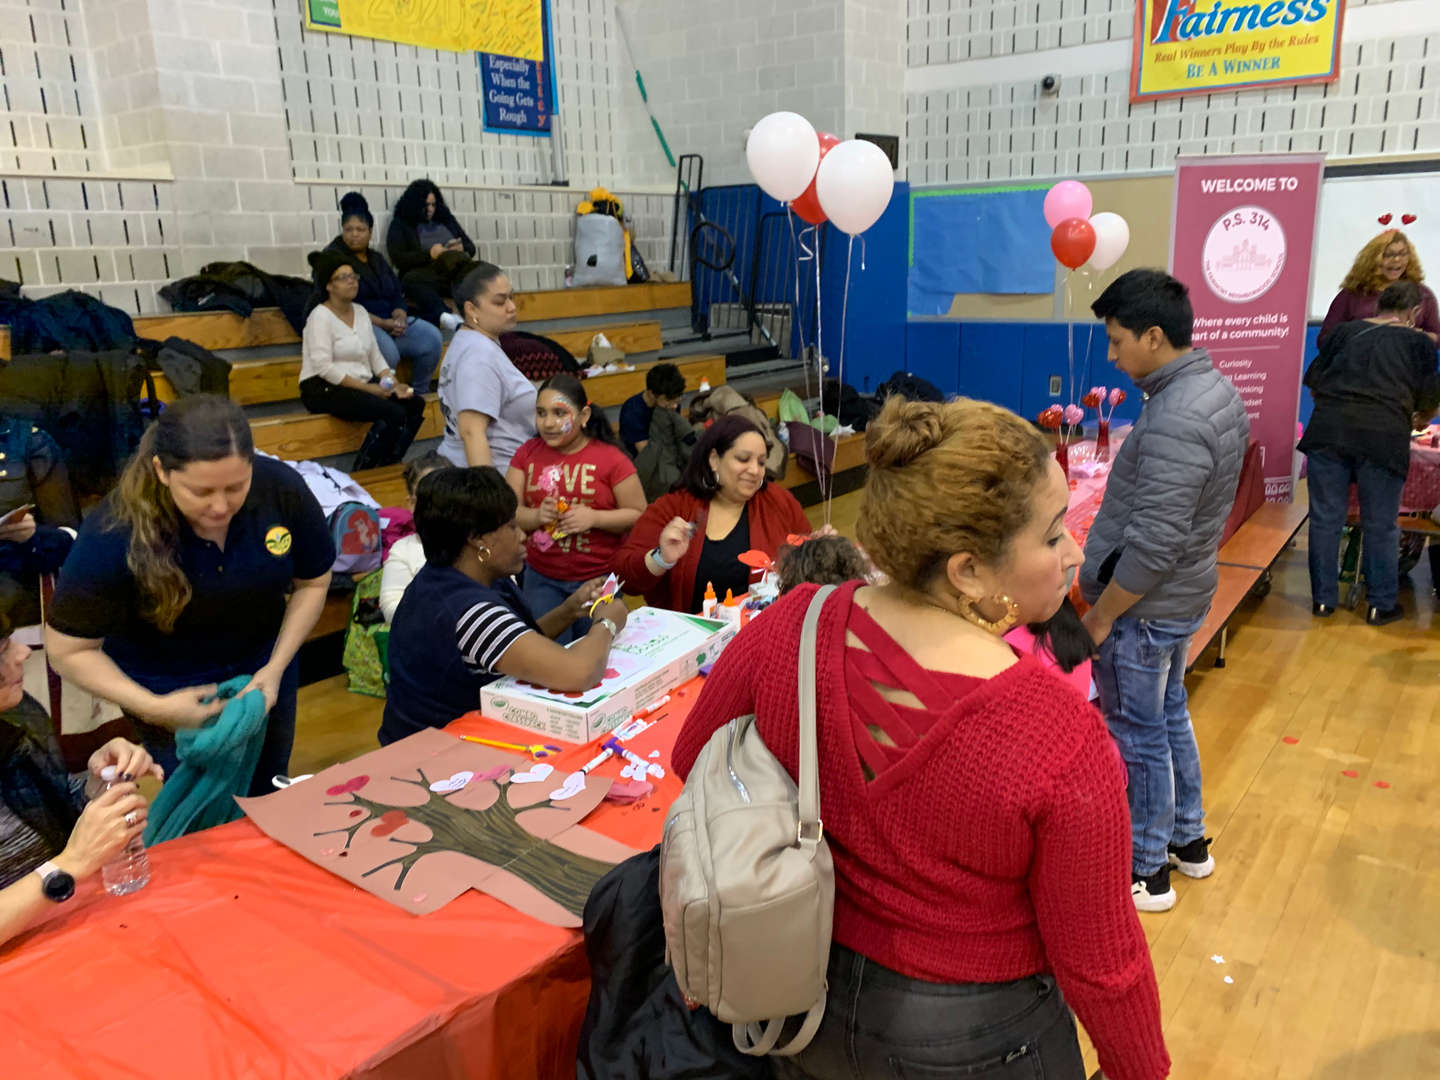 Parents and students standing around a long table with pink balloons